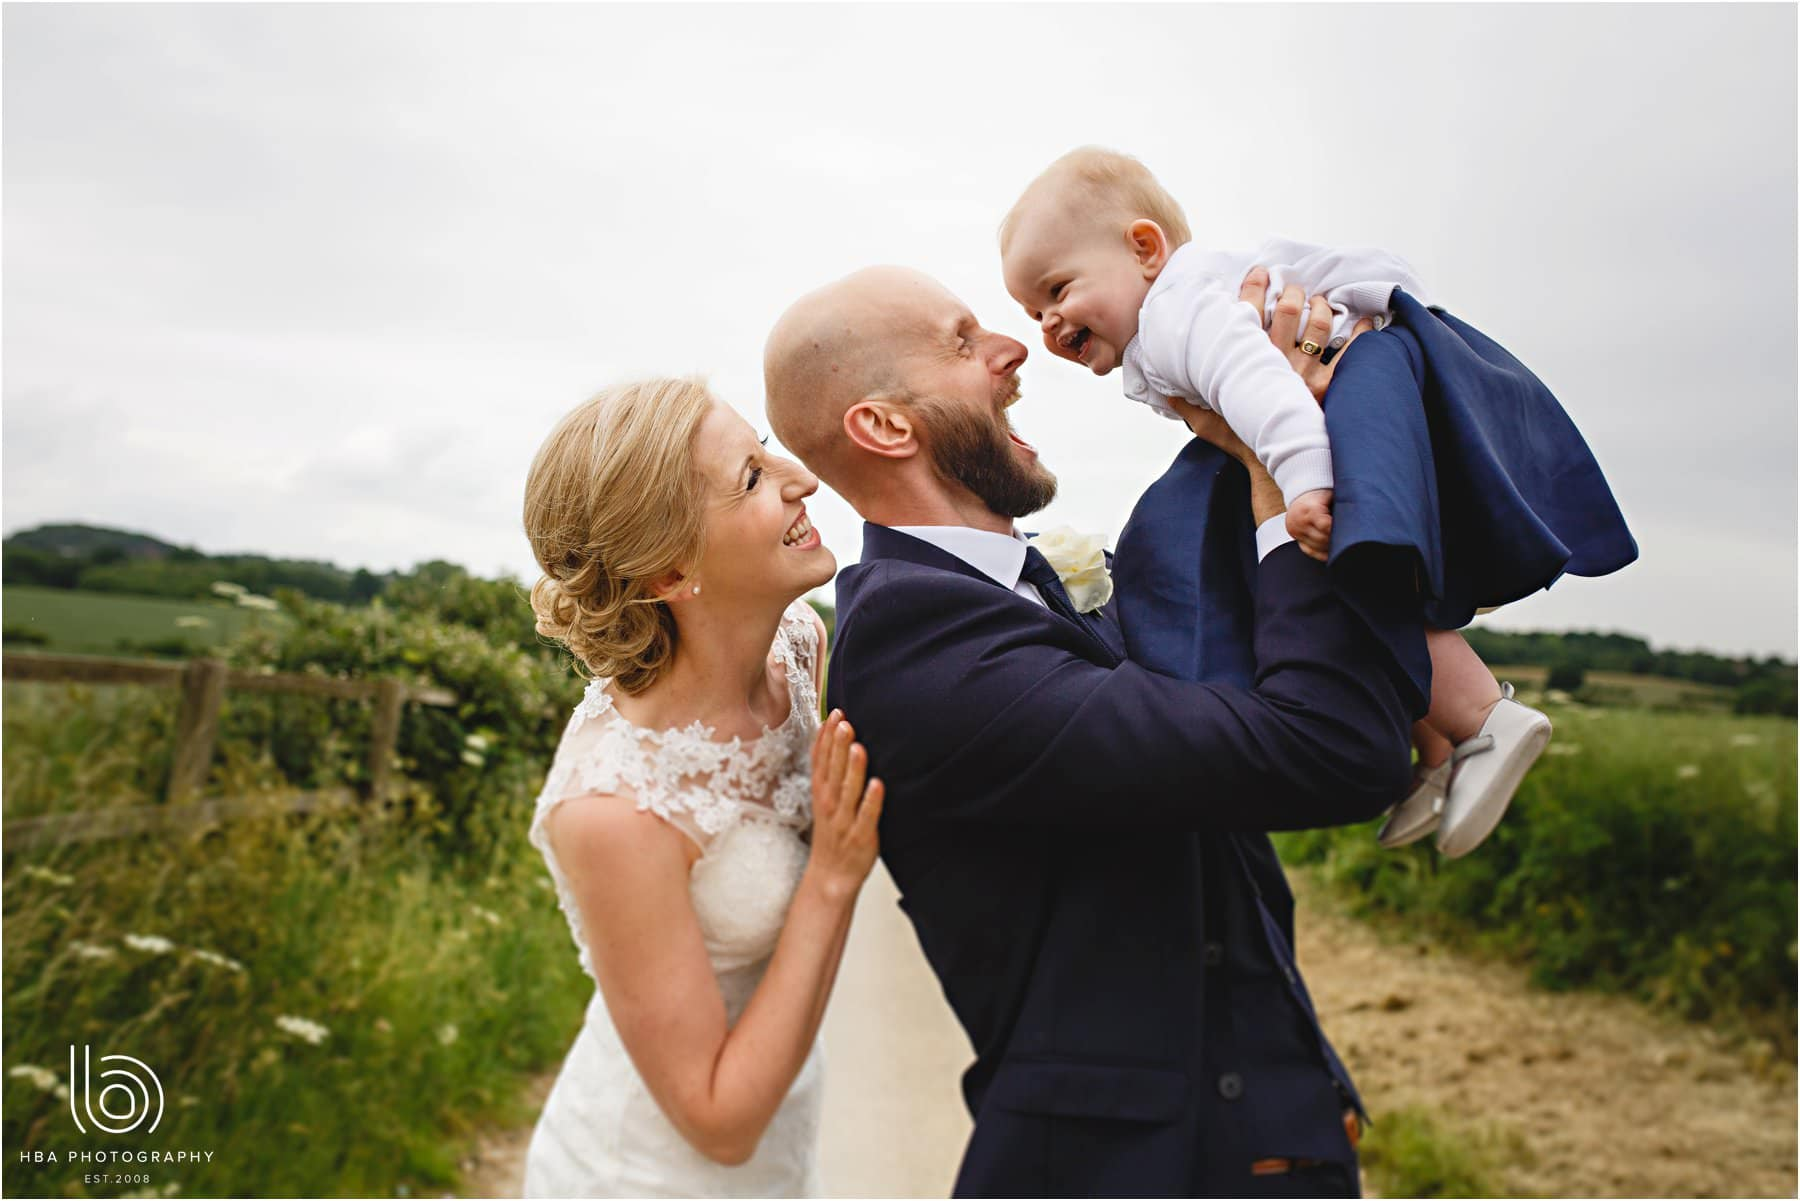 the bride & groom and their daughter